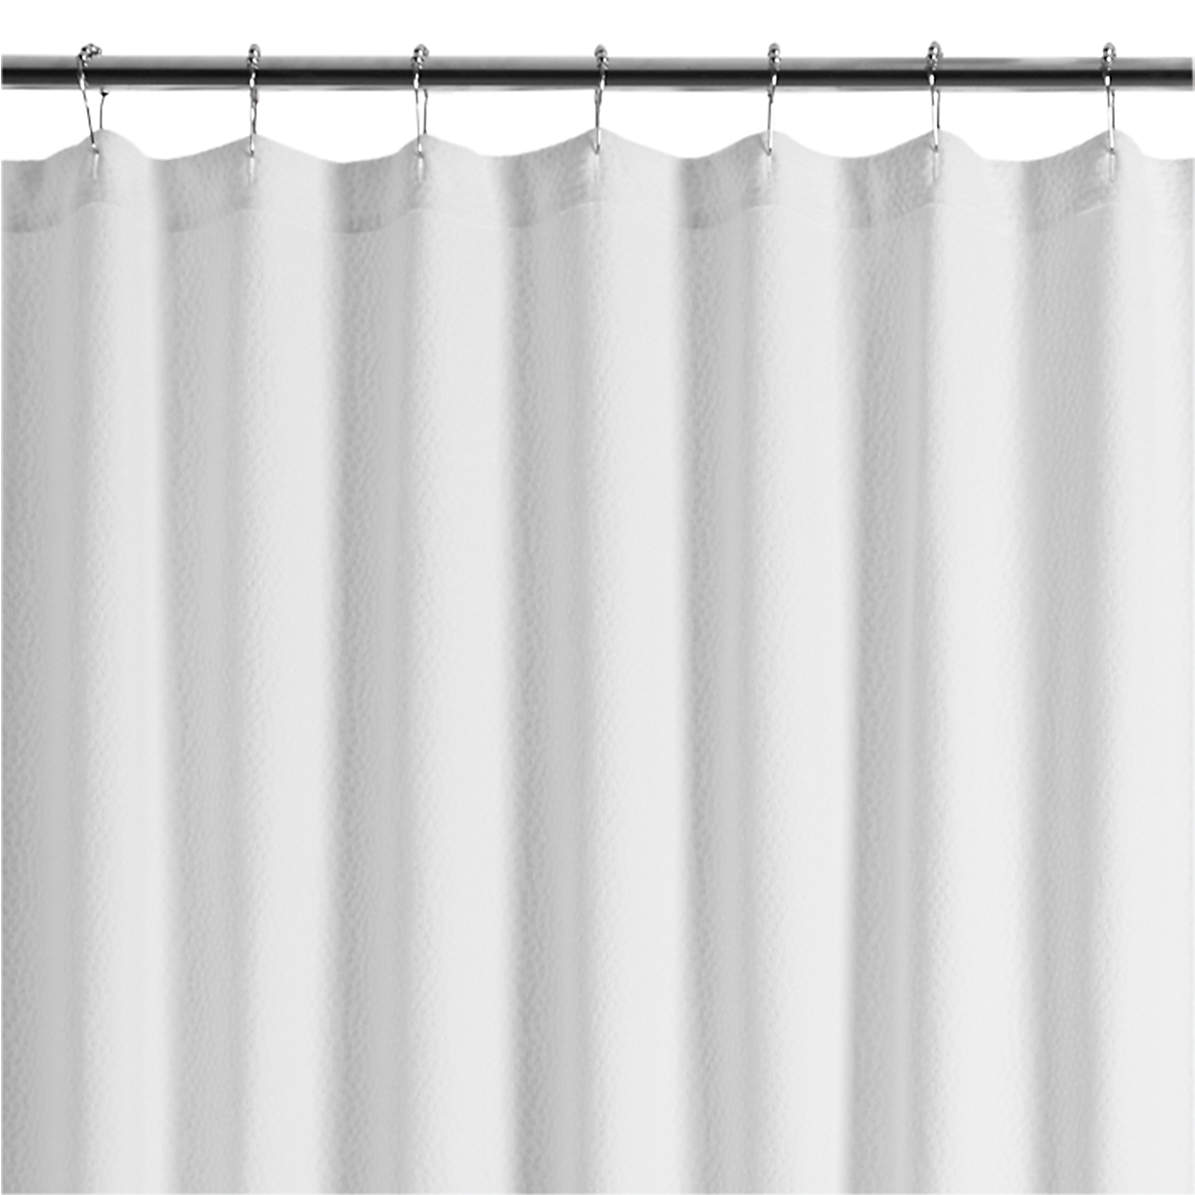 Pebble Matelasse White Extra Long Shower Curtain Reviews Crate And Barrel